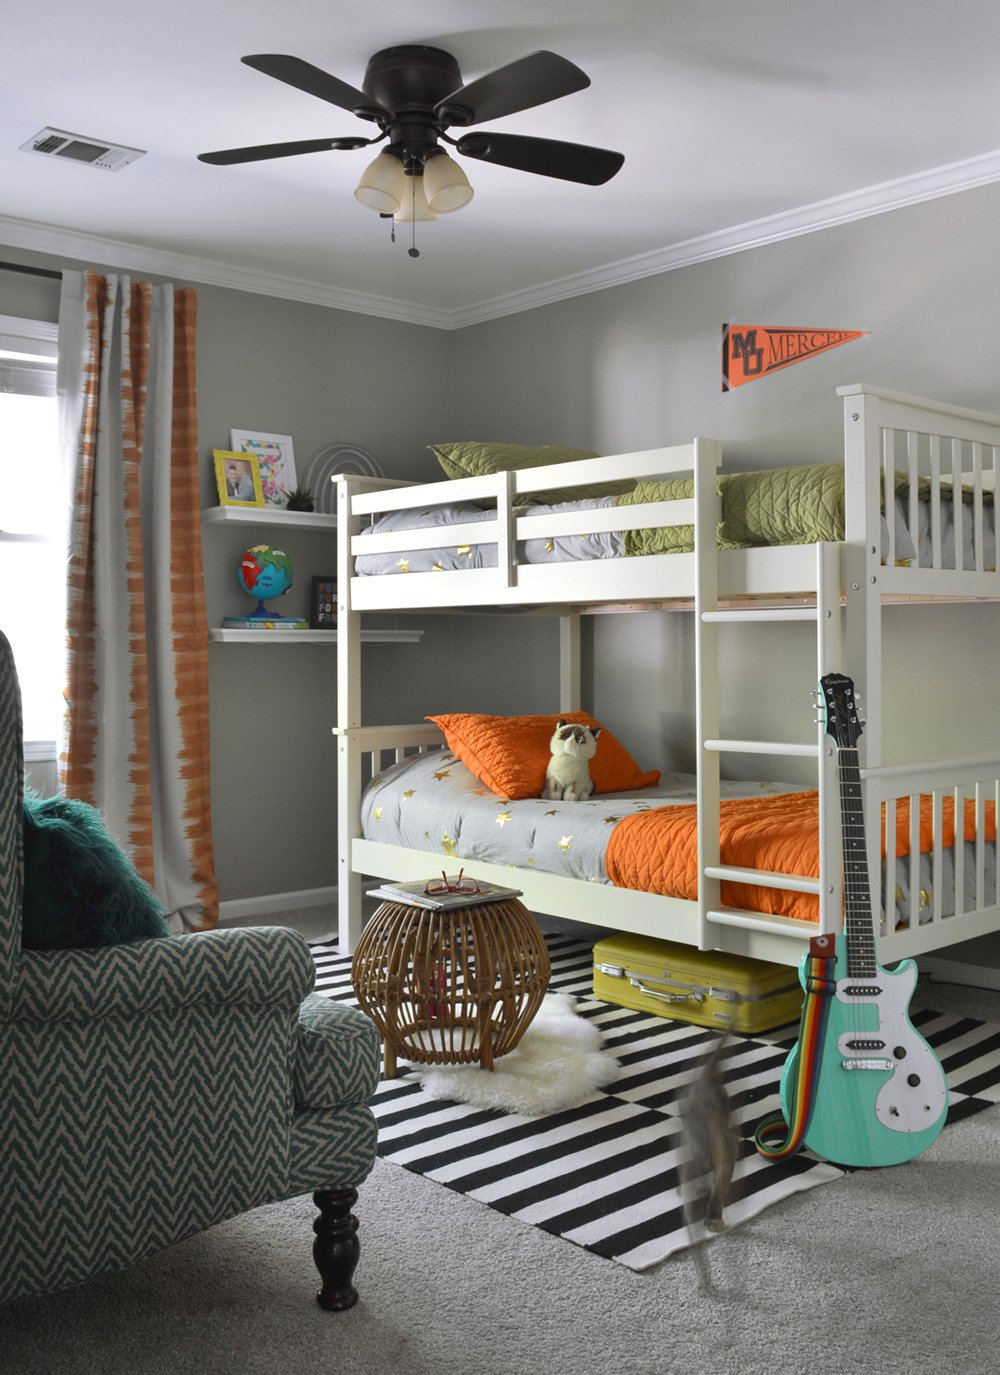 Love this colorful boy's bedroom with bunk beds! Wall color is Sherwin-Williams Chatroom.